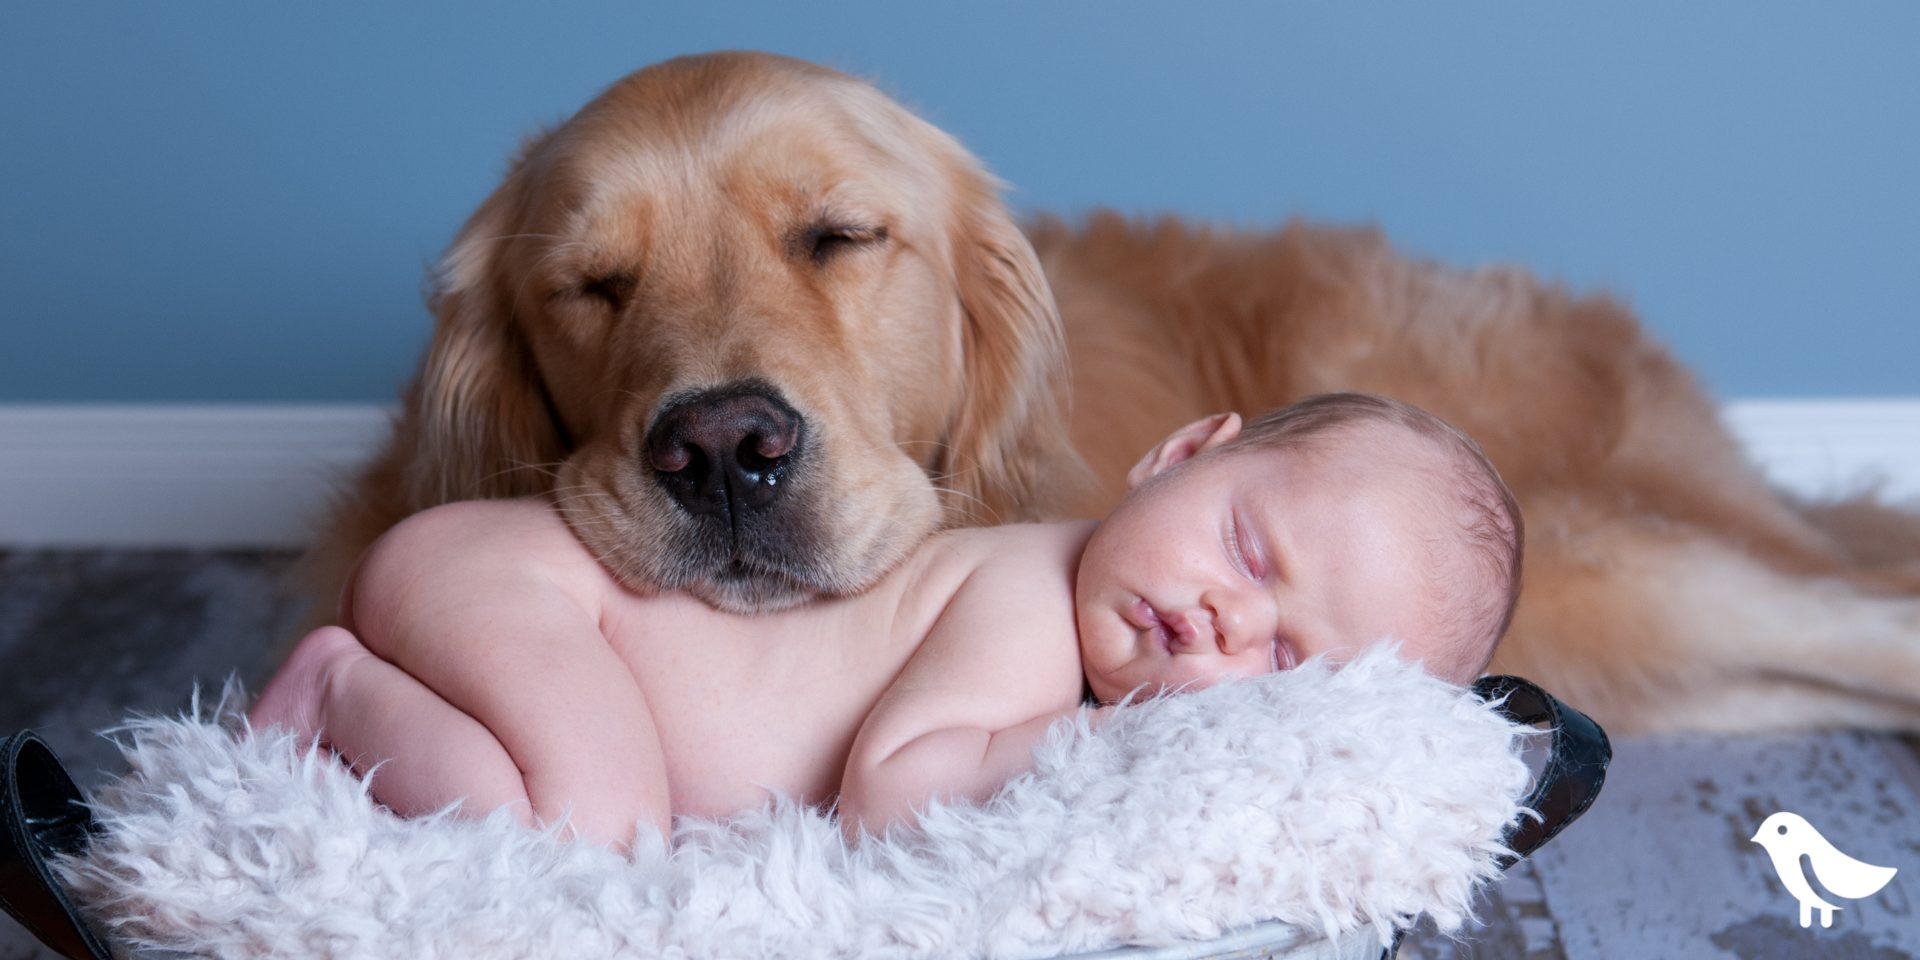 Prepare your dog for baby's arrival